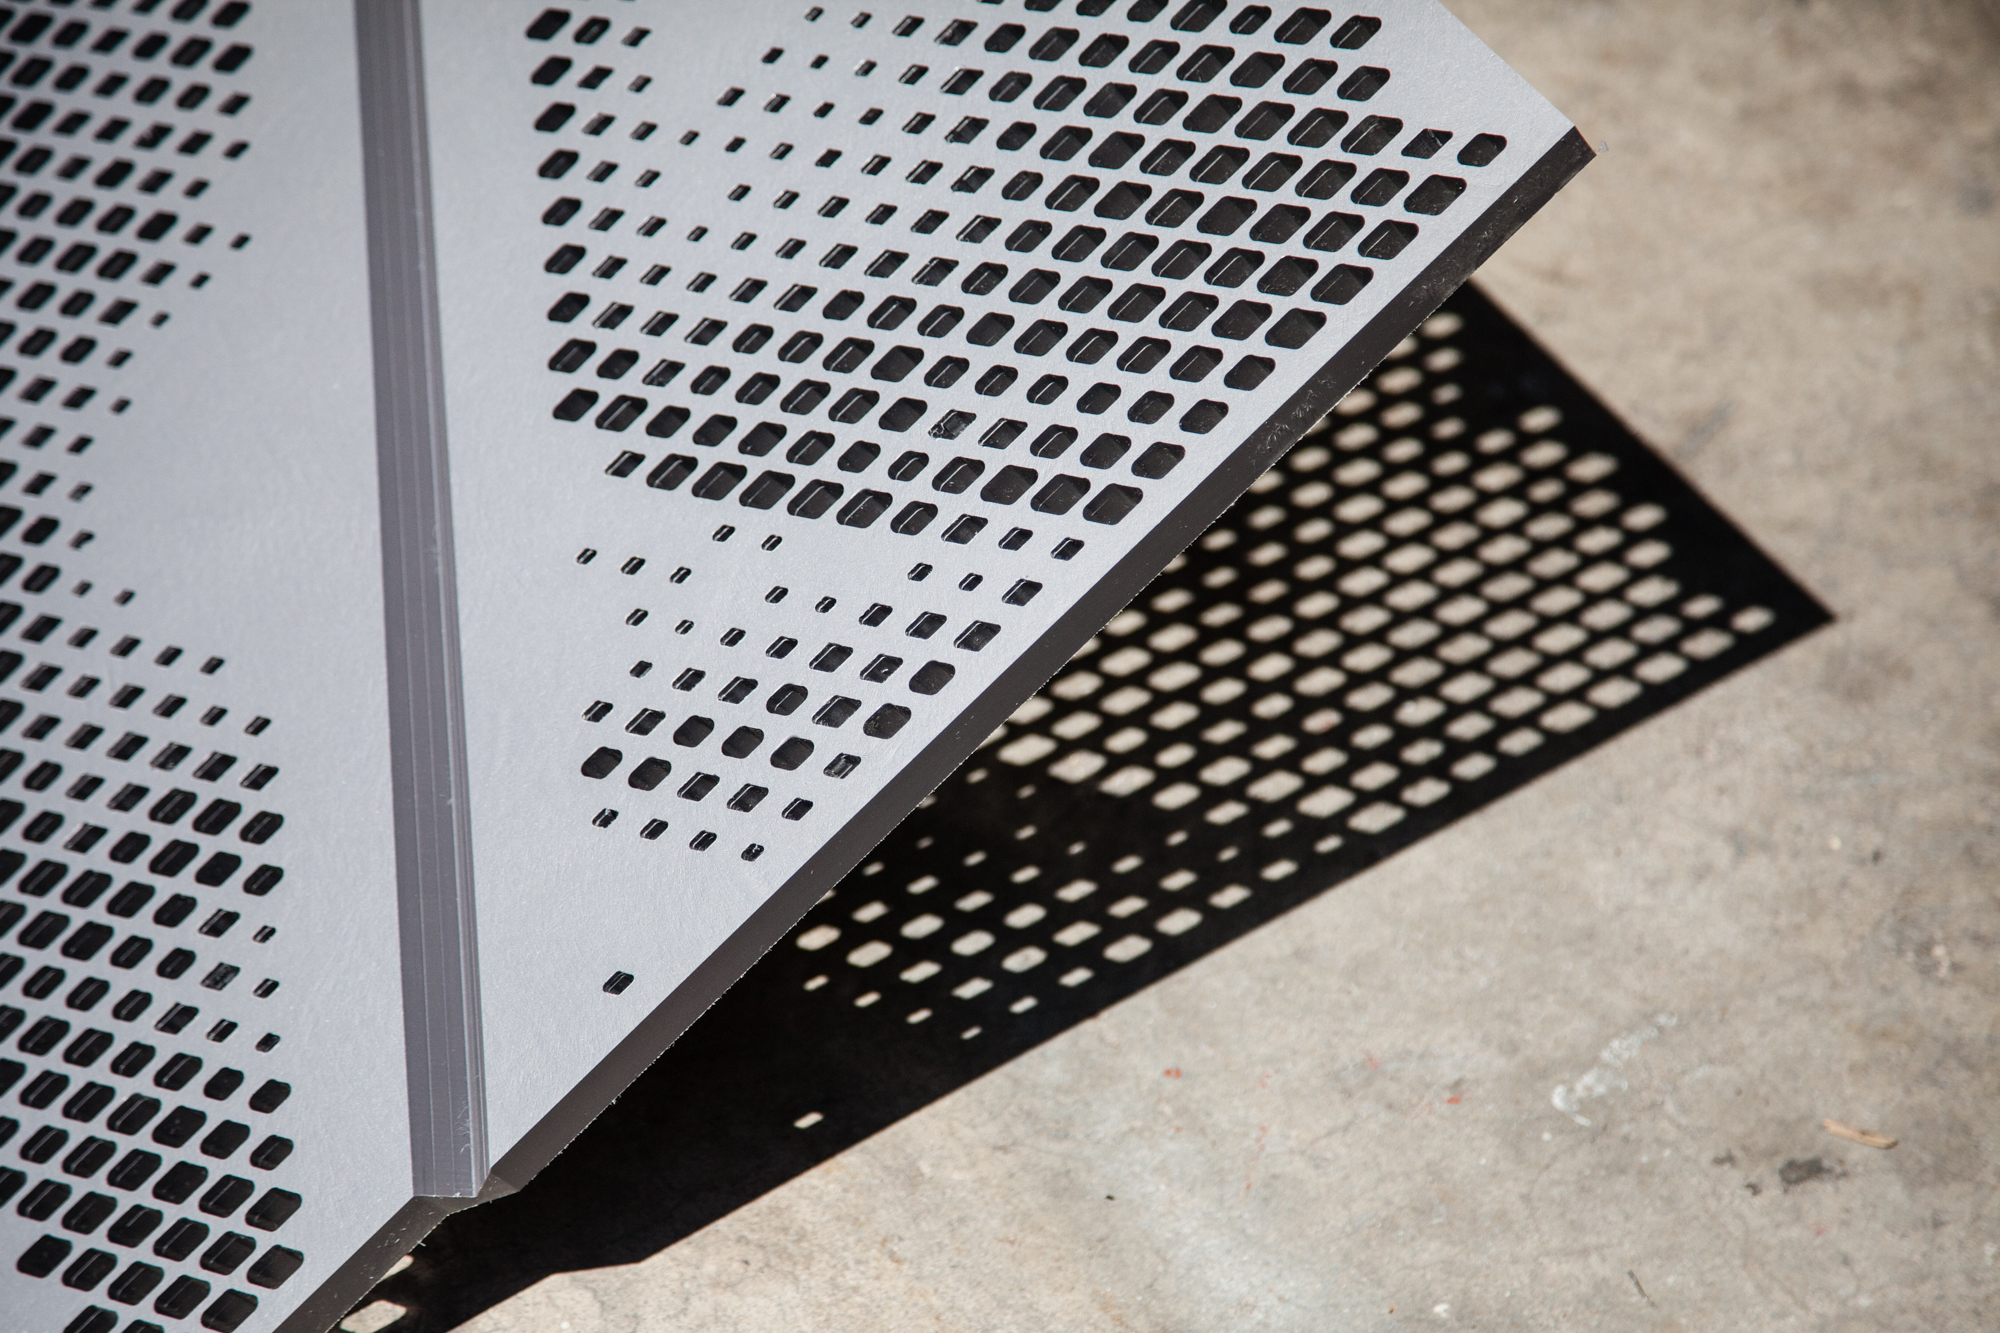 Asteriskos-Design-Digital-Fabrication-Mary-O'Connor-Memorial-Transit-Shelter-Architekton-Tempe-Panel-Perforations-Shadow.jpg